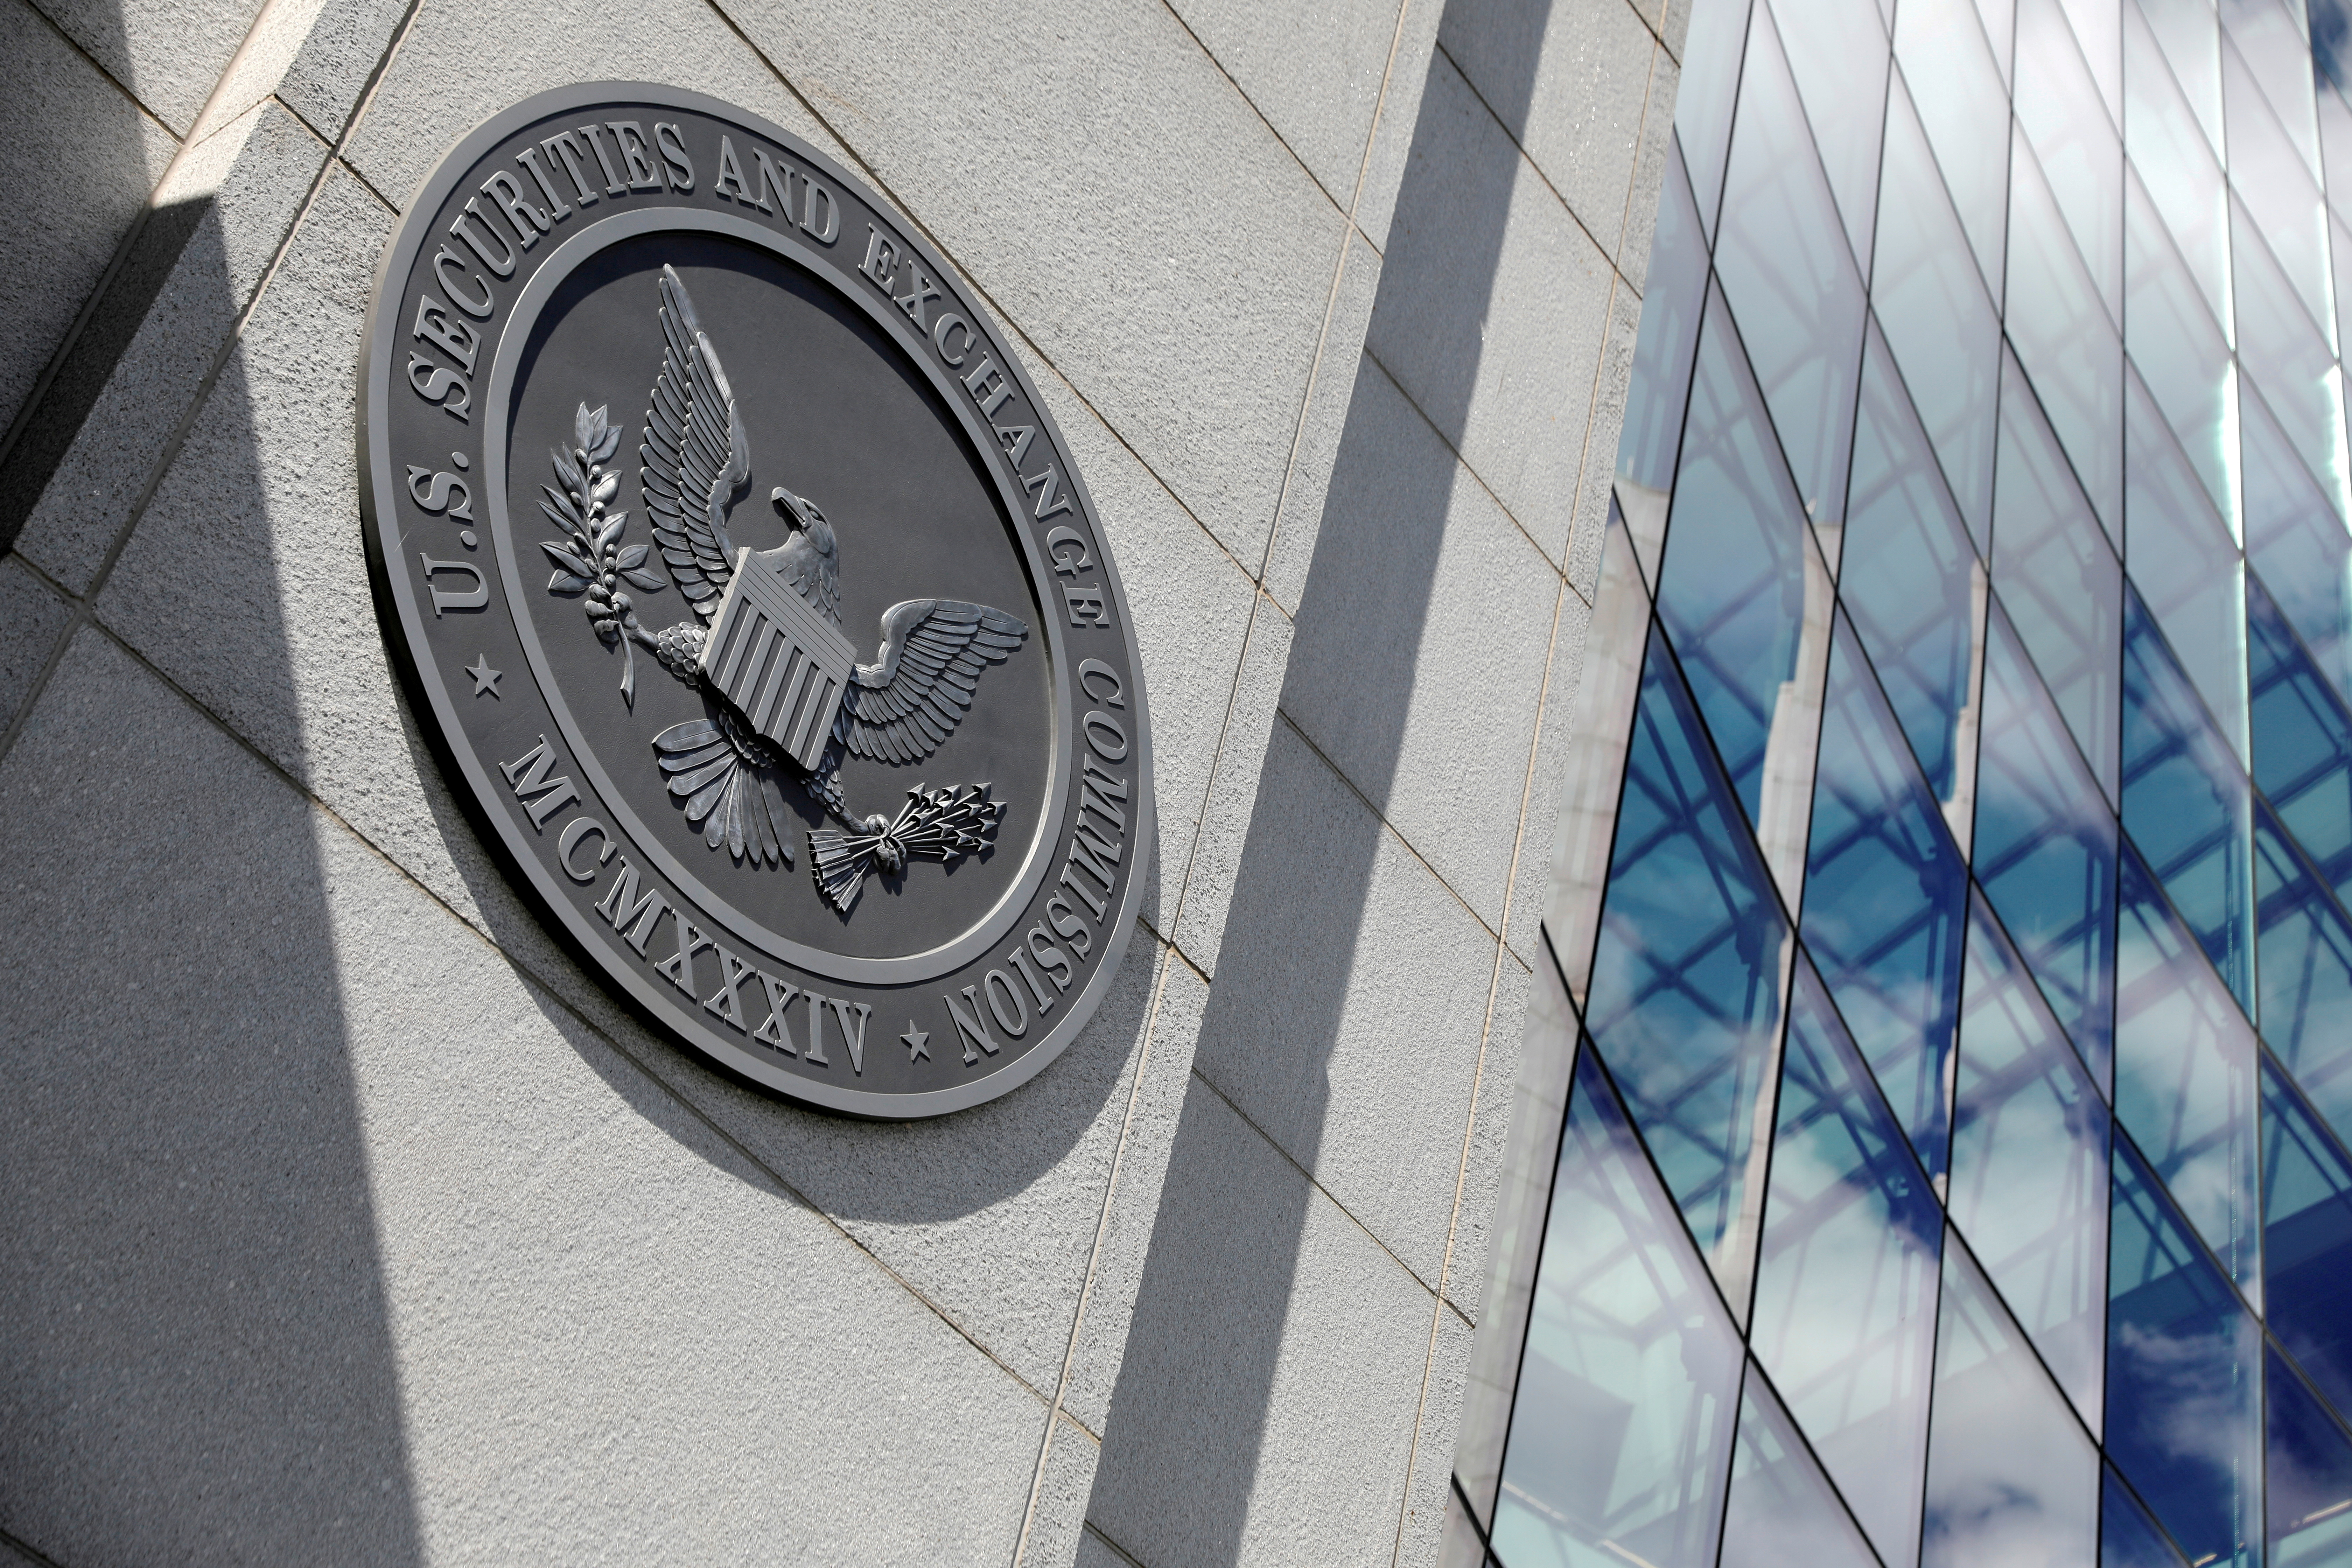 The U.S. Securities and Exchange Commission (SEC) headquarters in Washington, D.C., U.S., May 12, 2021. REUTERS/Andrew Kelly